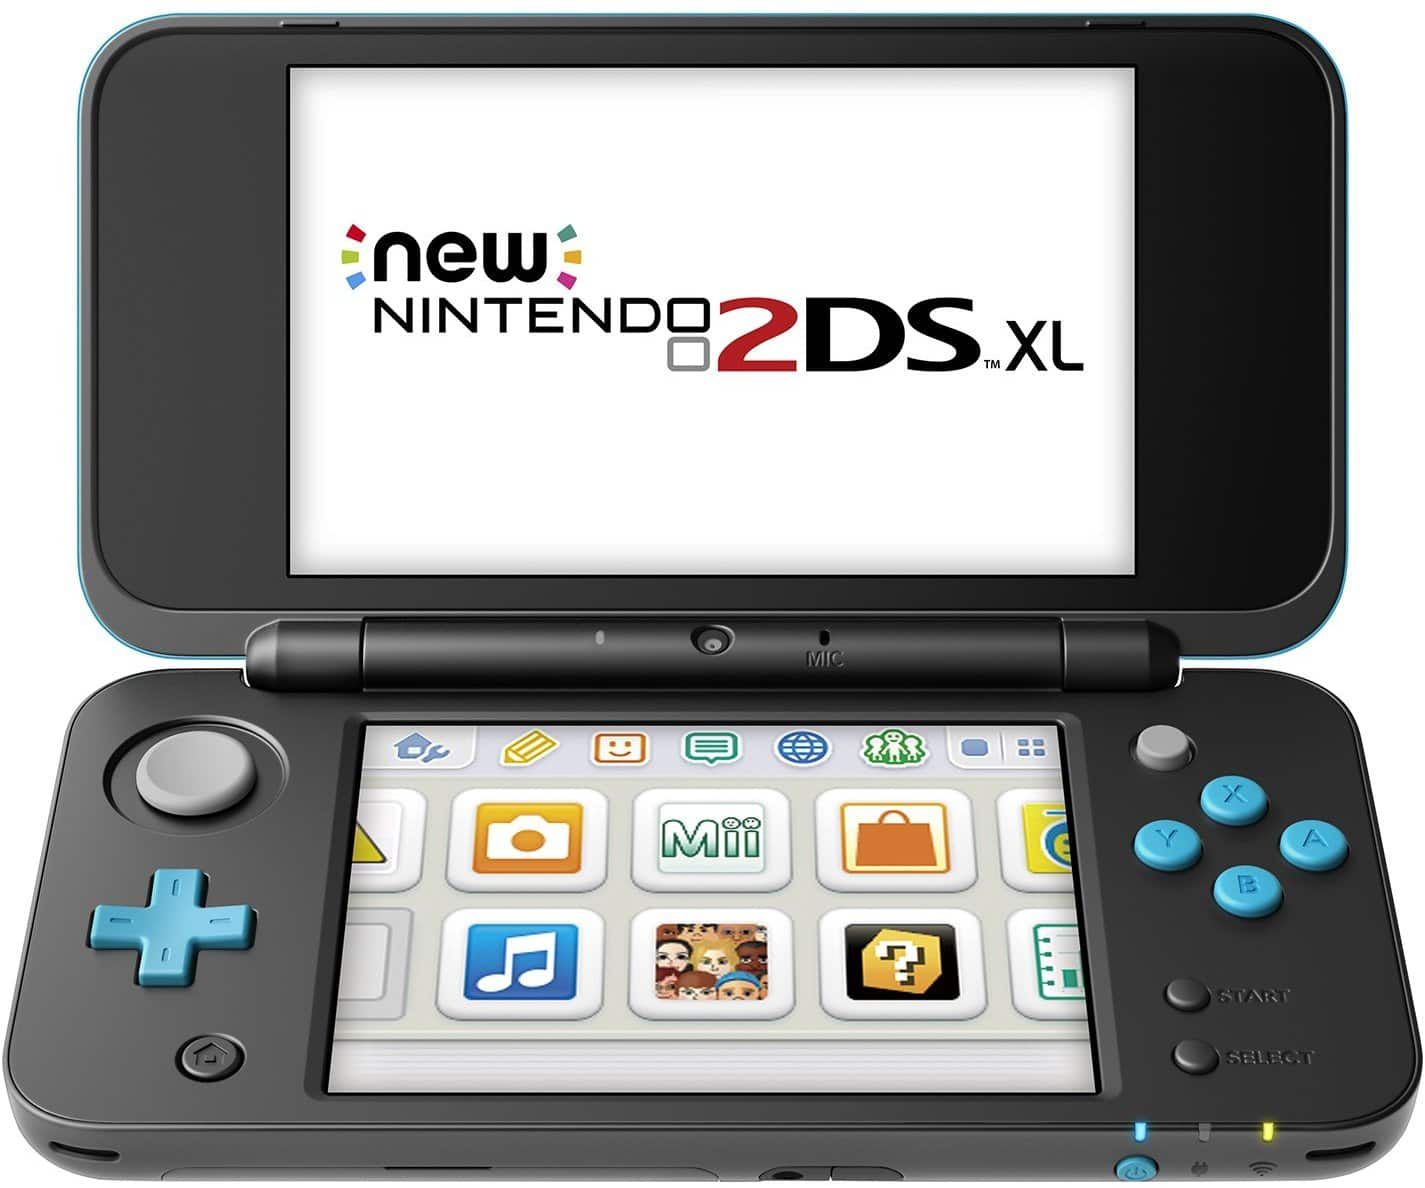 Nintendo 2DS XL - Black and Turquoise $129.99